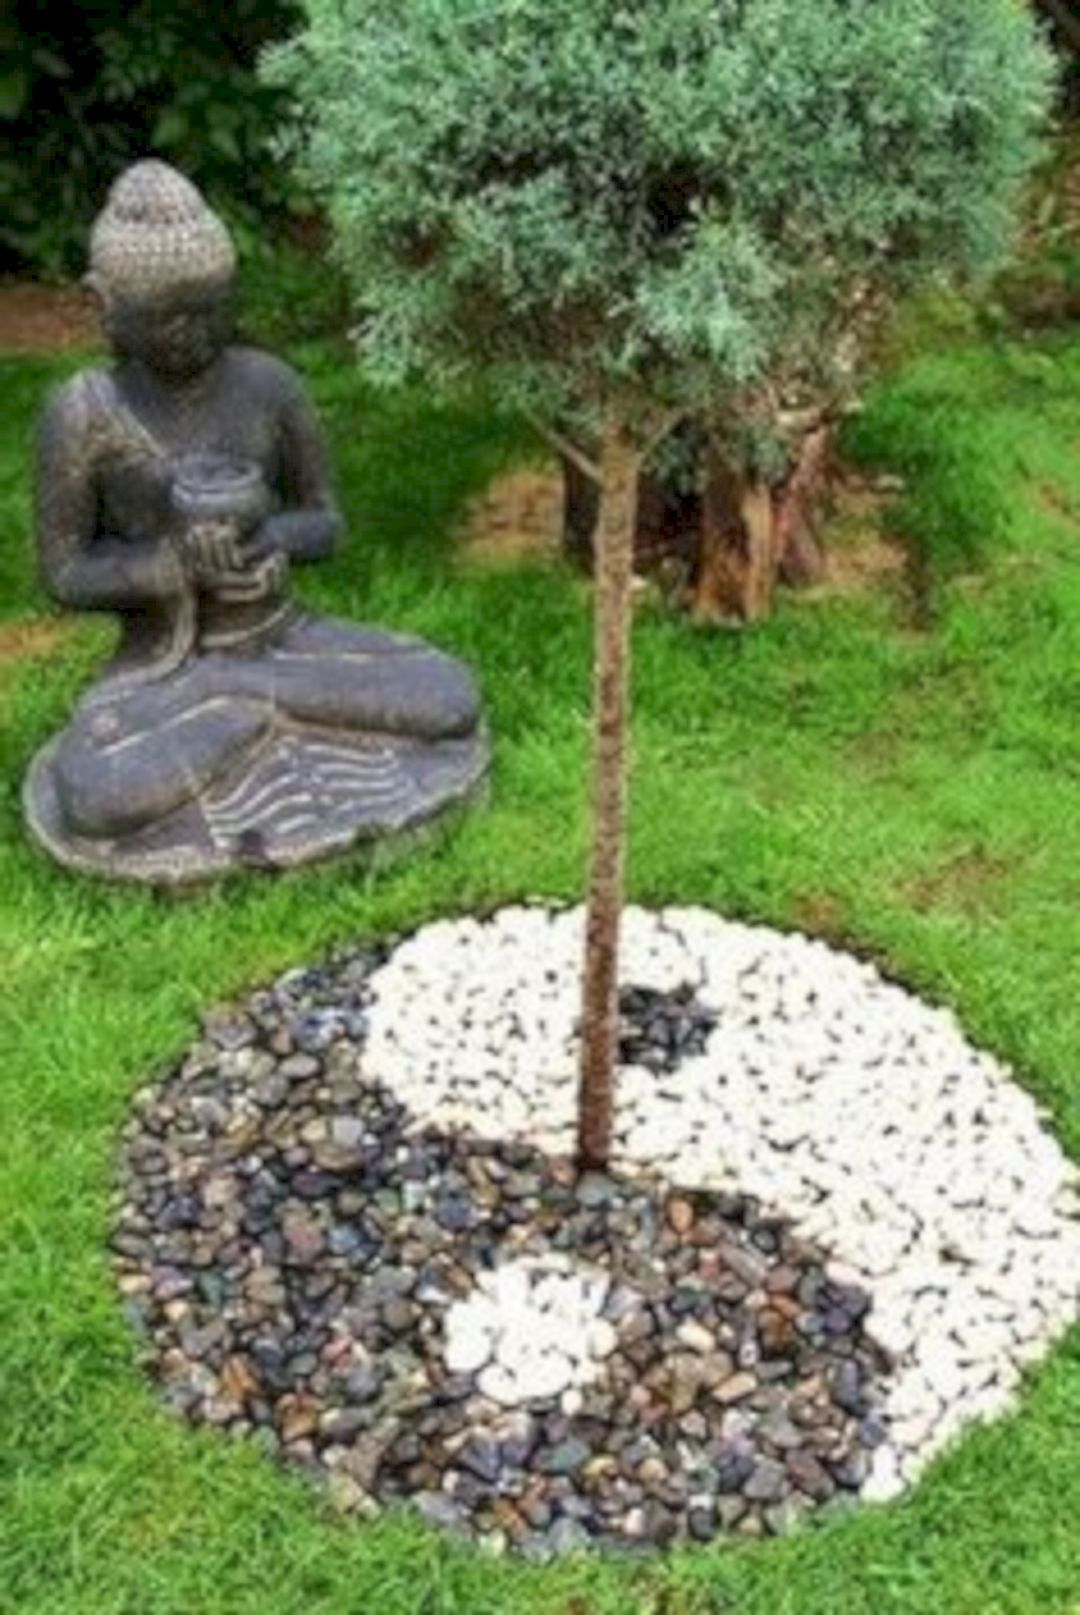 Japanese Rock Garden Ideas 76 Beautiful Zen Garden Ideas For Backyard 380 Zen